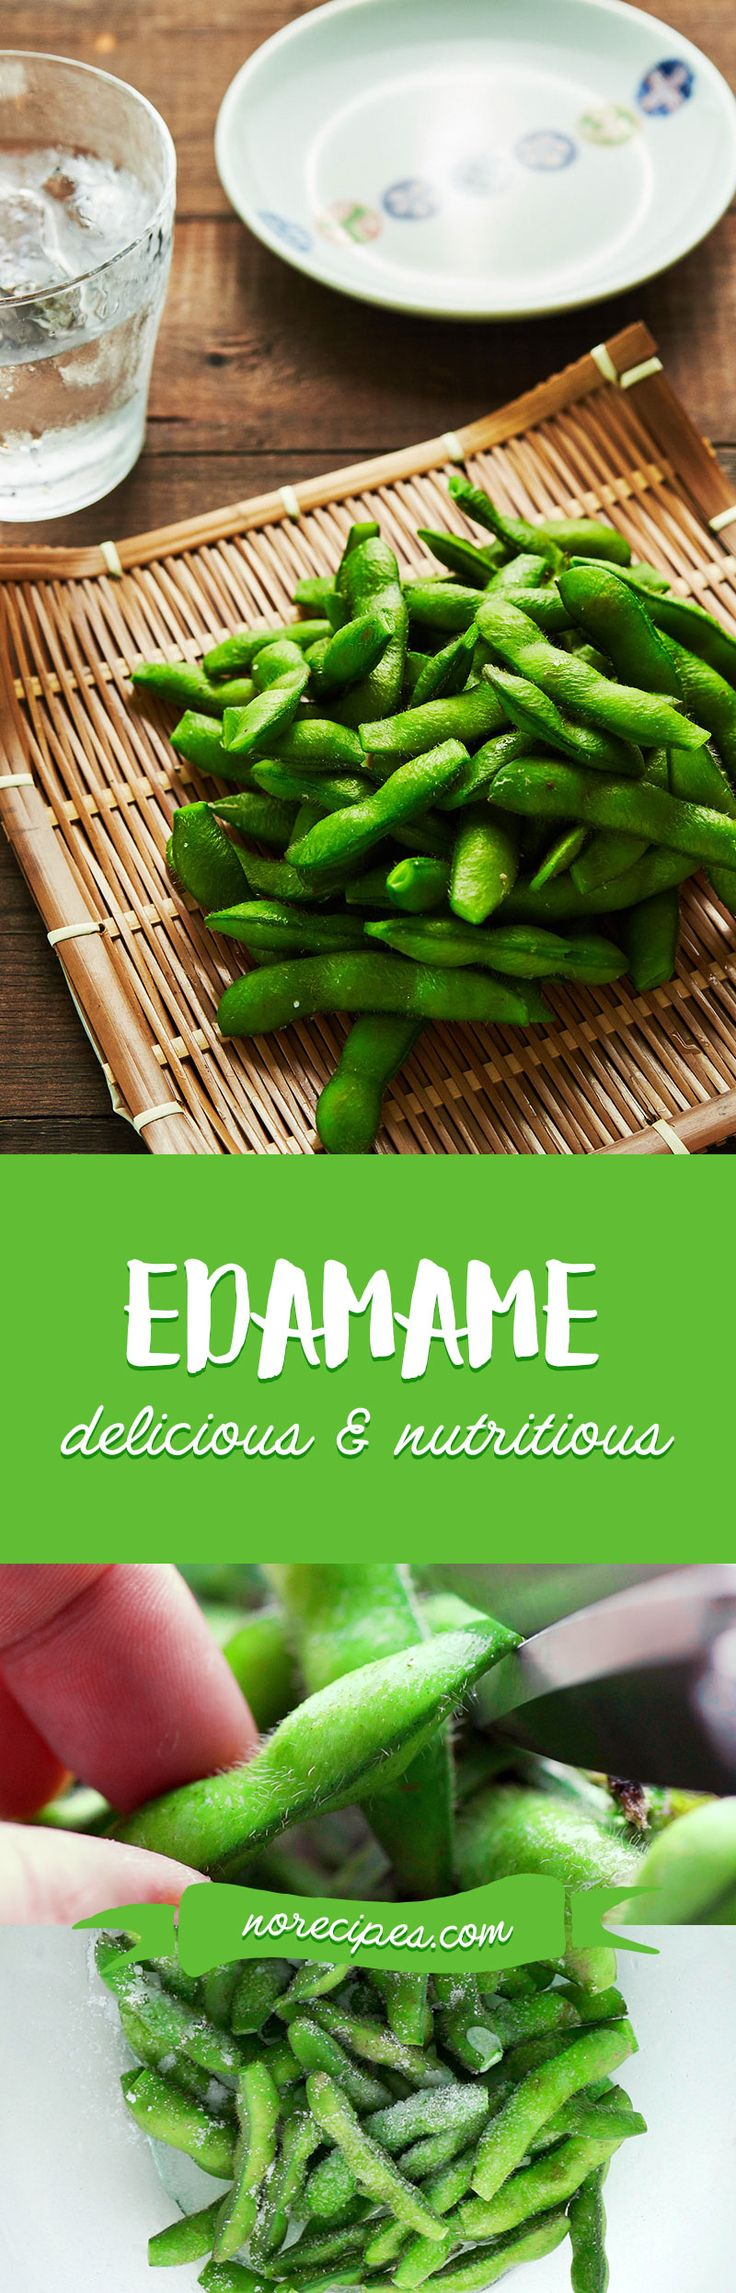 Everything Edamame: Nutrition, Health Benefits, and an Edamame Recipe